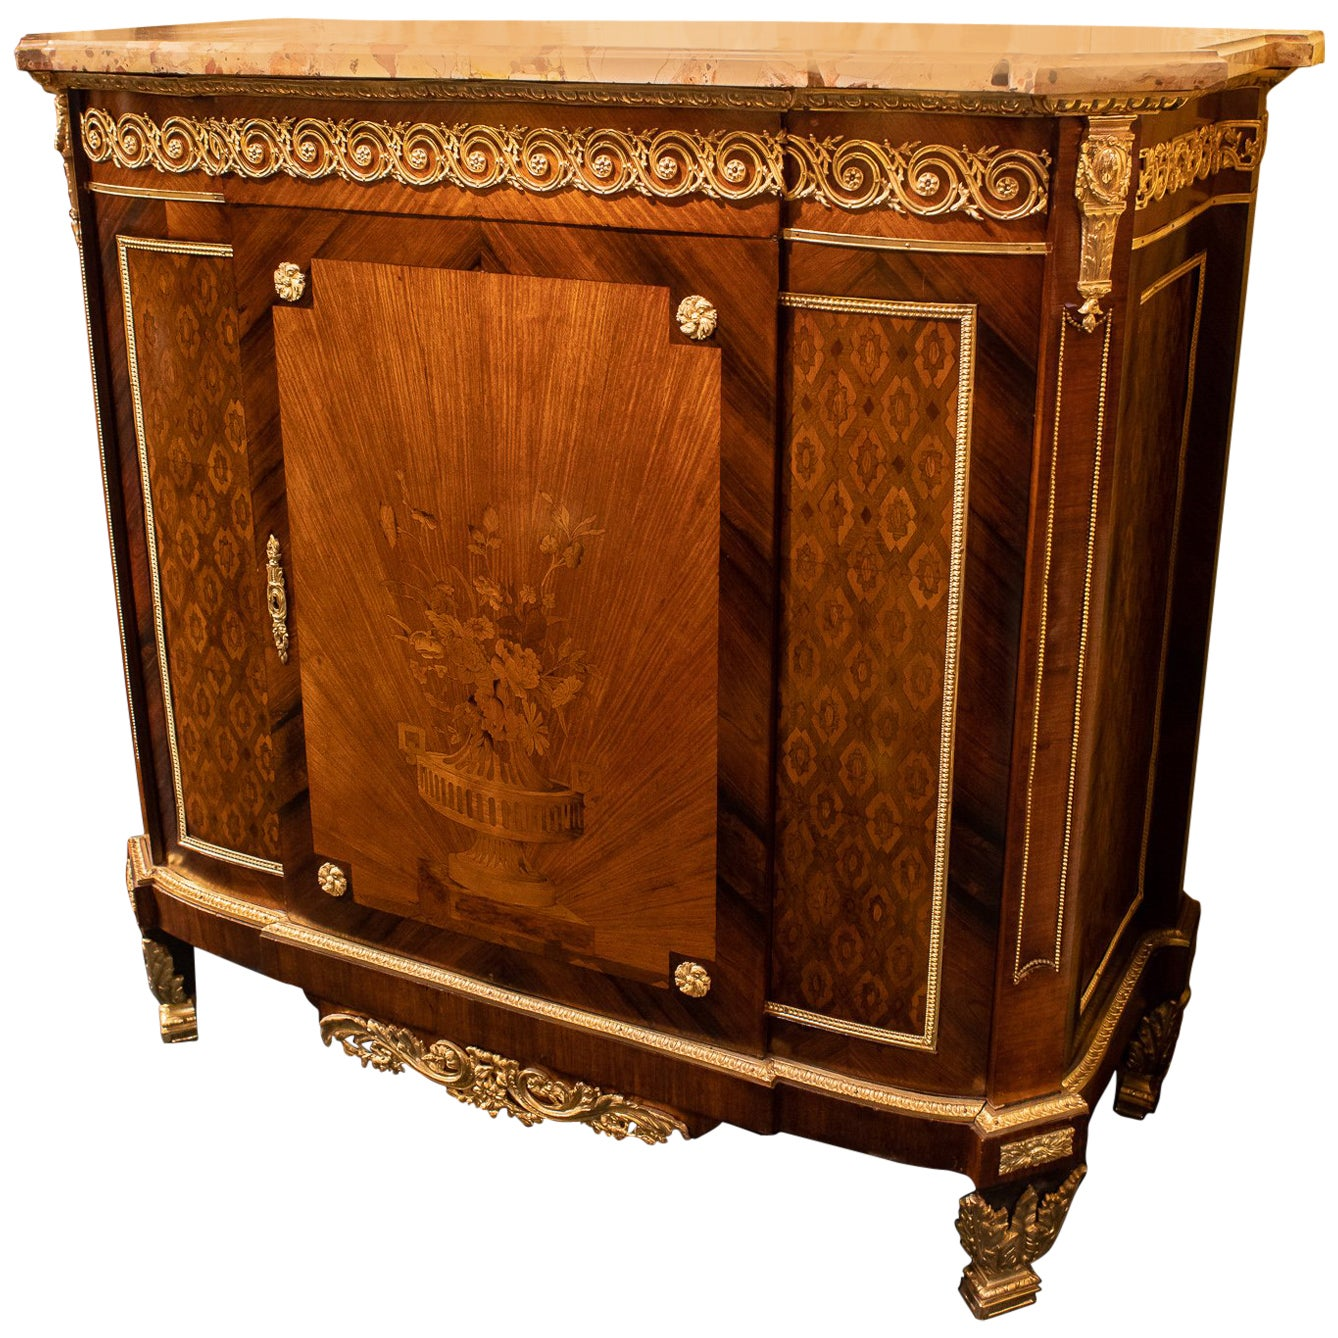 French Louis XVI Style Marquetry Inlaid Bronze-Mounted Marble-Top Commode